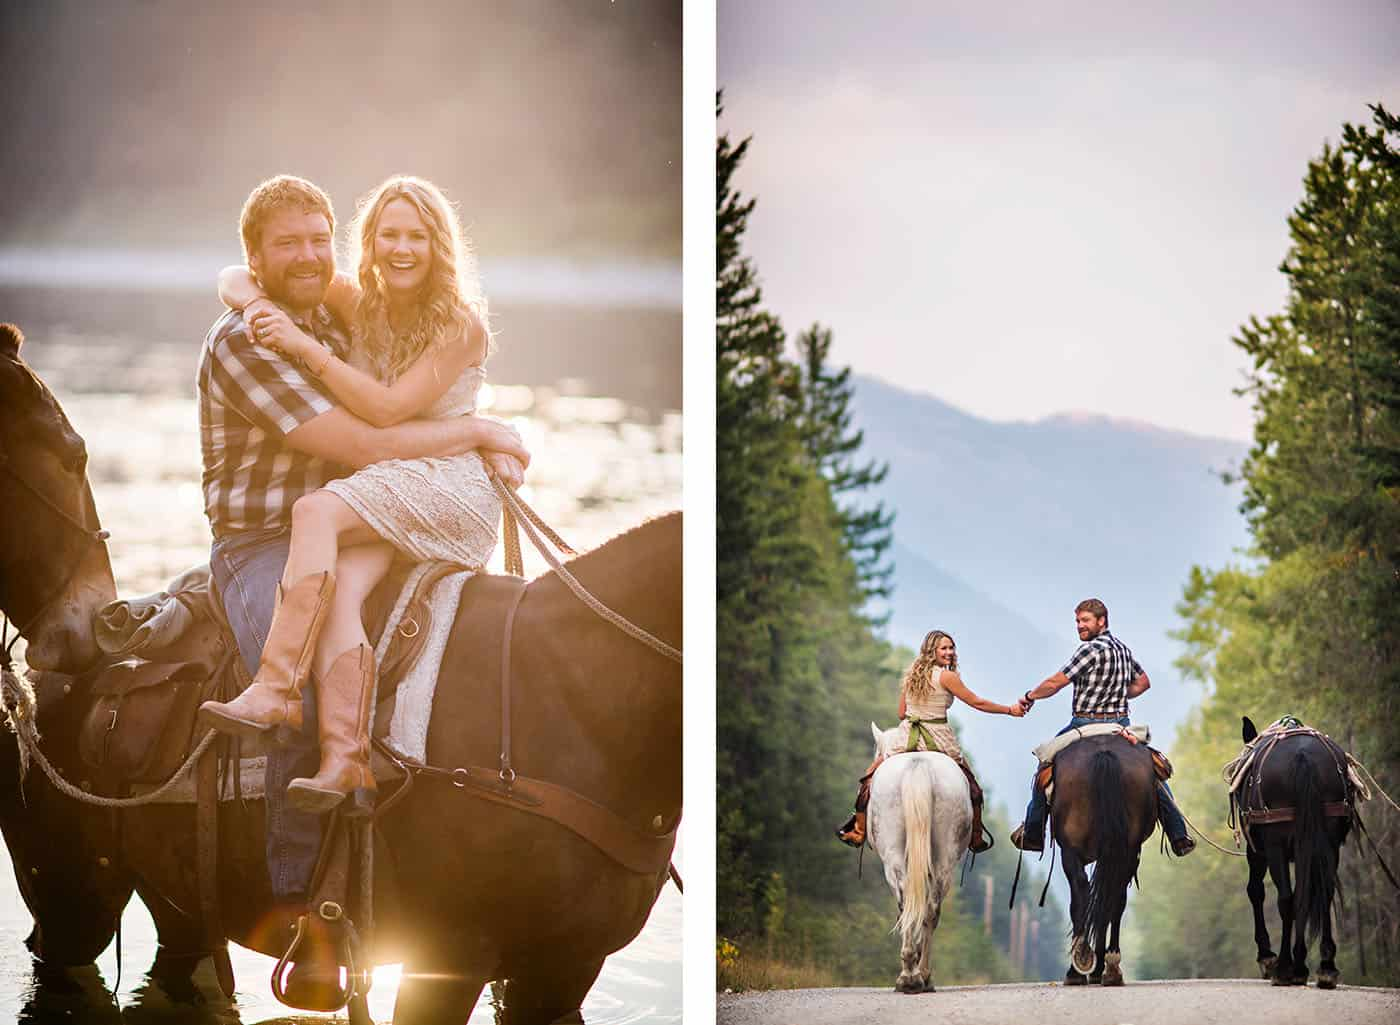 Epic Montana Photo Locations - beautiful couple with horses by a river in the mountains